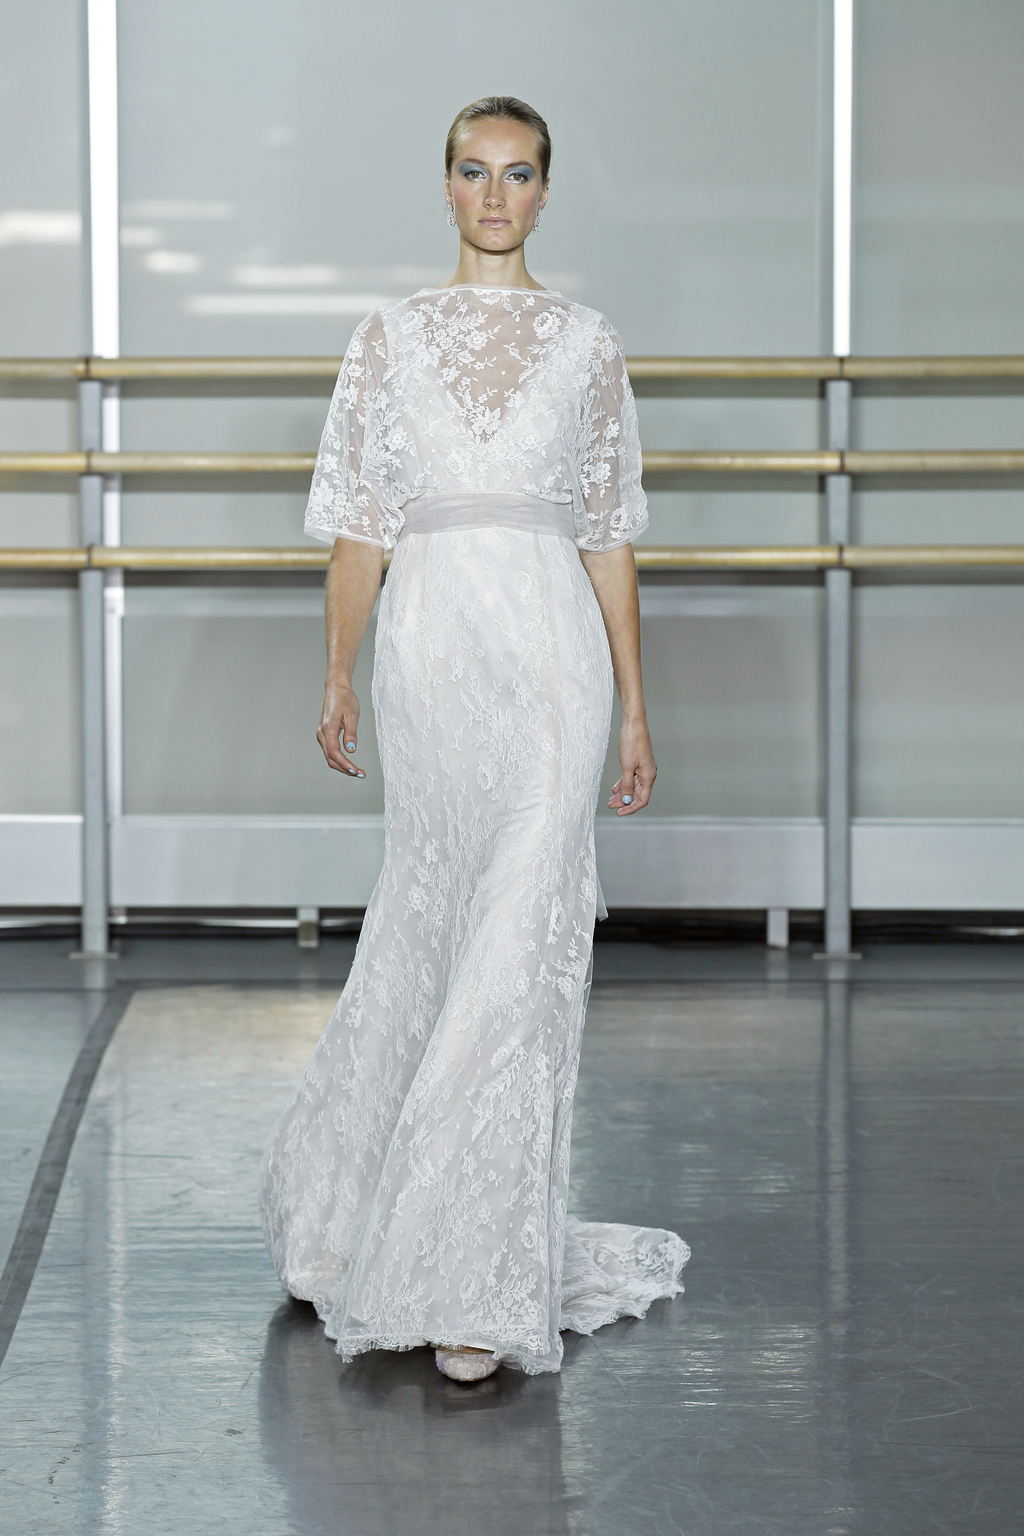 Rivini-wedding-dress-fall-2013-bridal-gown-delicata.full